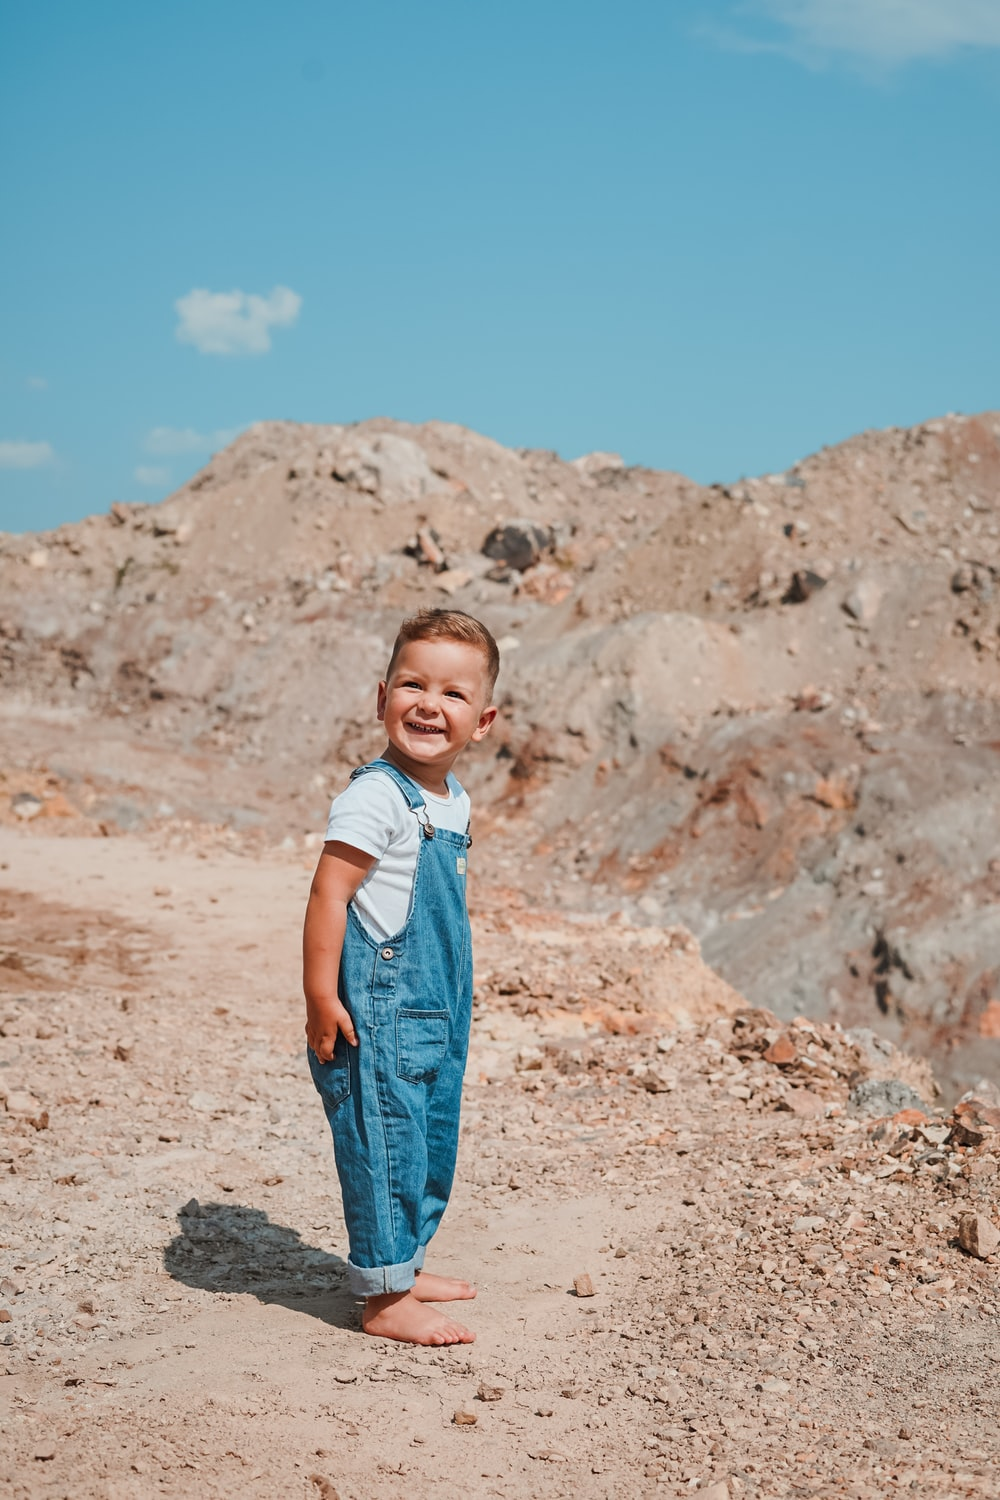 smiling boy standing near rock formations during daytime